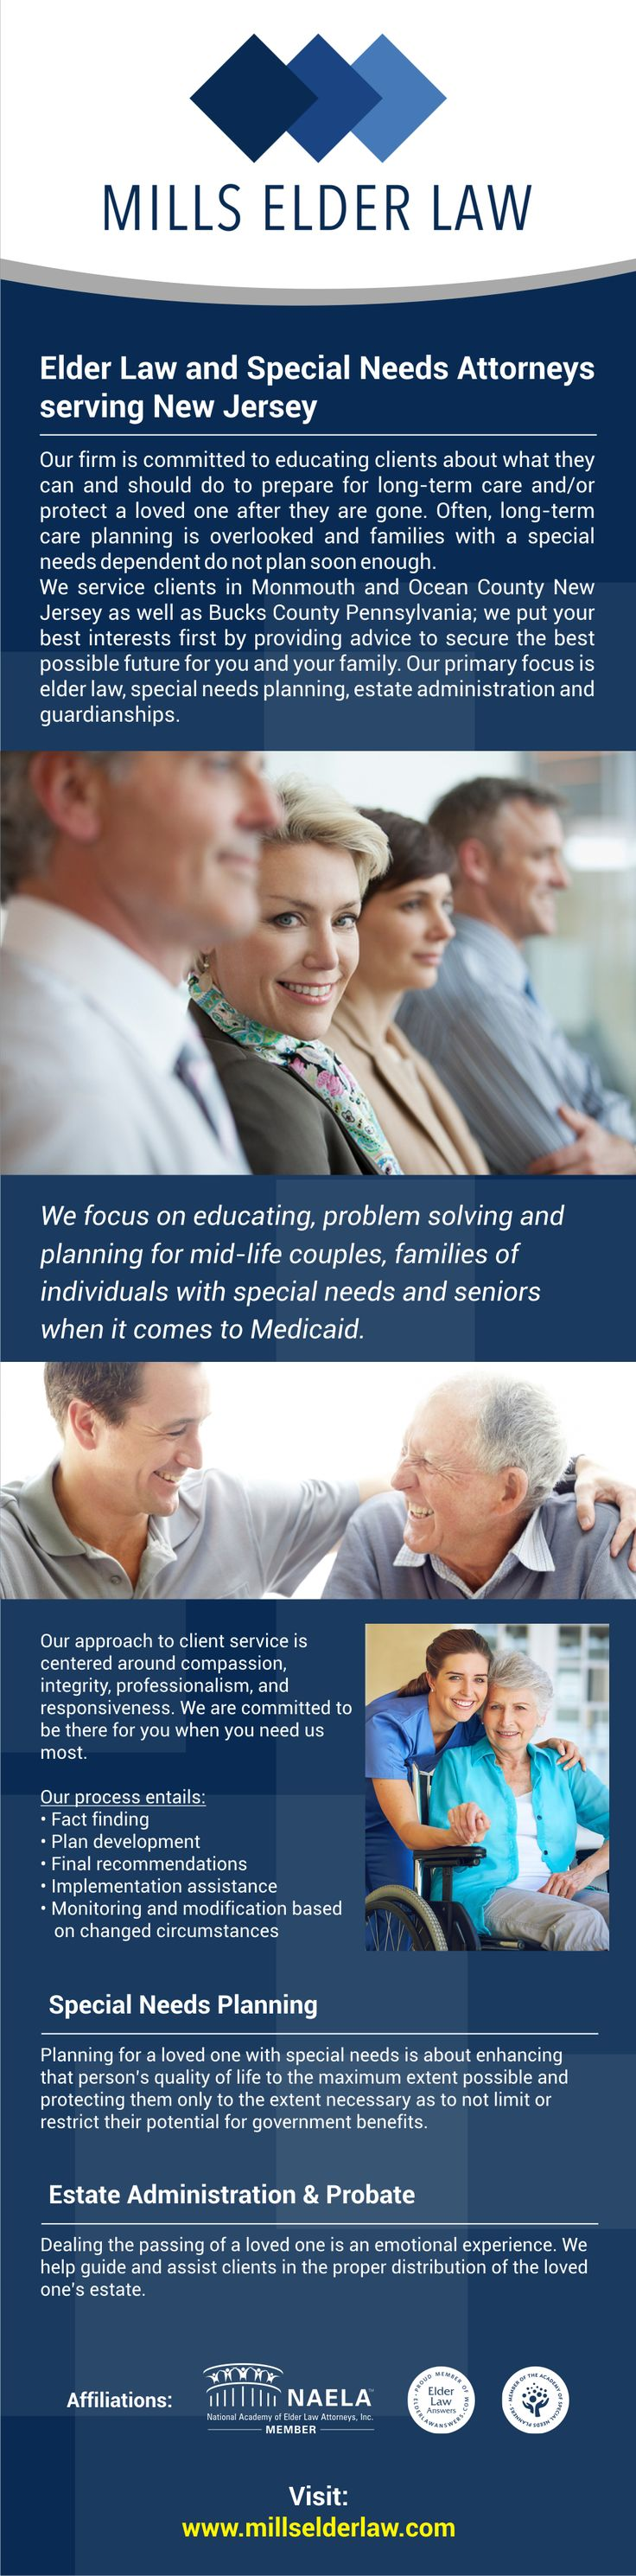 Our firm is committed to educating clients about what they can and should do to prepare for long-term care and/or protect a loved one after they are gone. Often, long-term care planning is overlooked and families with a special needs dependent do not plan soon enough.  We at Mills Elder Law service clients in Monmouth and Ocean County New Jersey as well as Bucks County Pennsylvania; we put your best interests first by providing advice to secure the best possible f